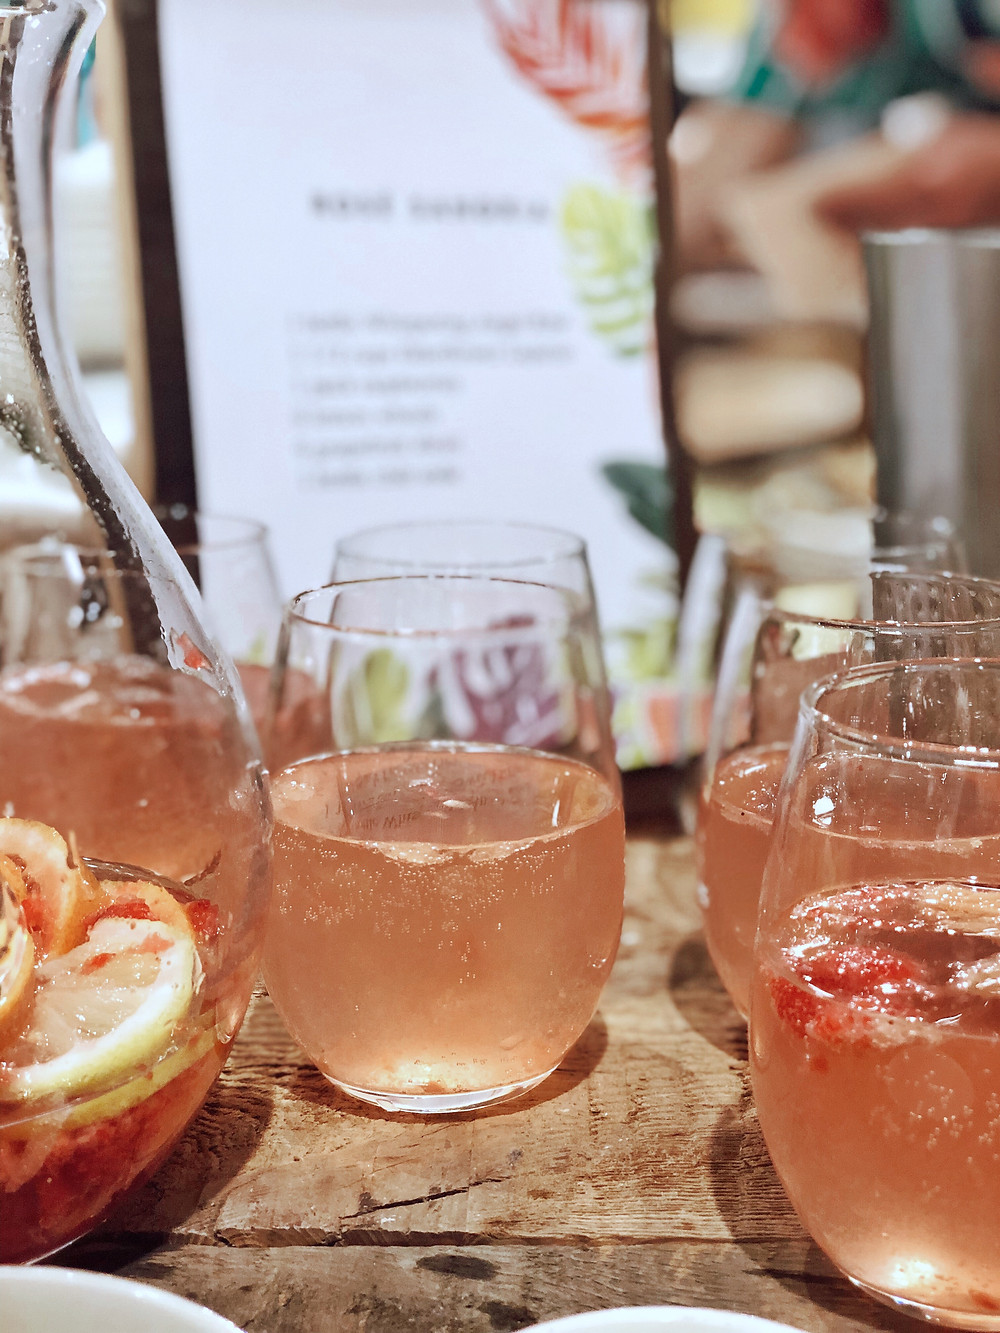 Rosé sangria at Anthropologie cocktail workshop in Asheville, NC